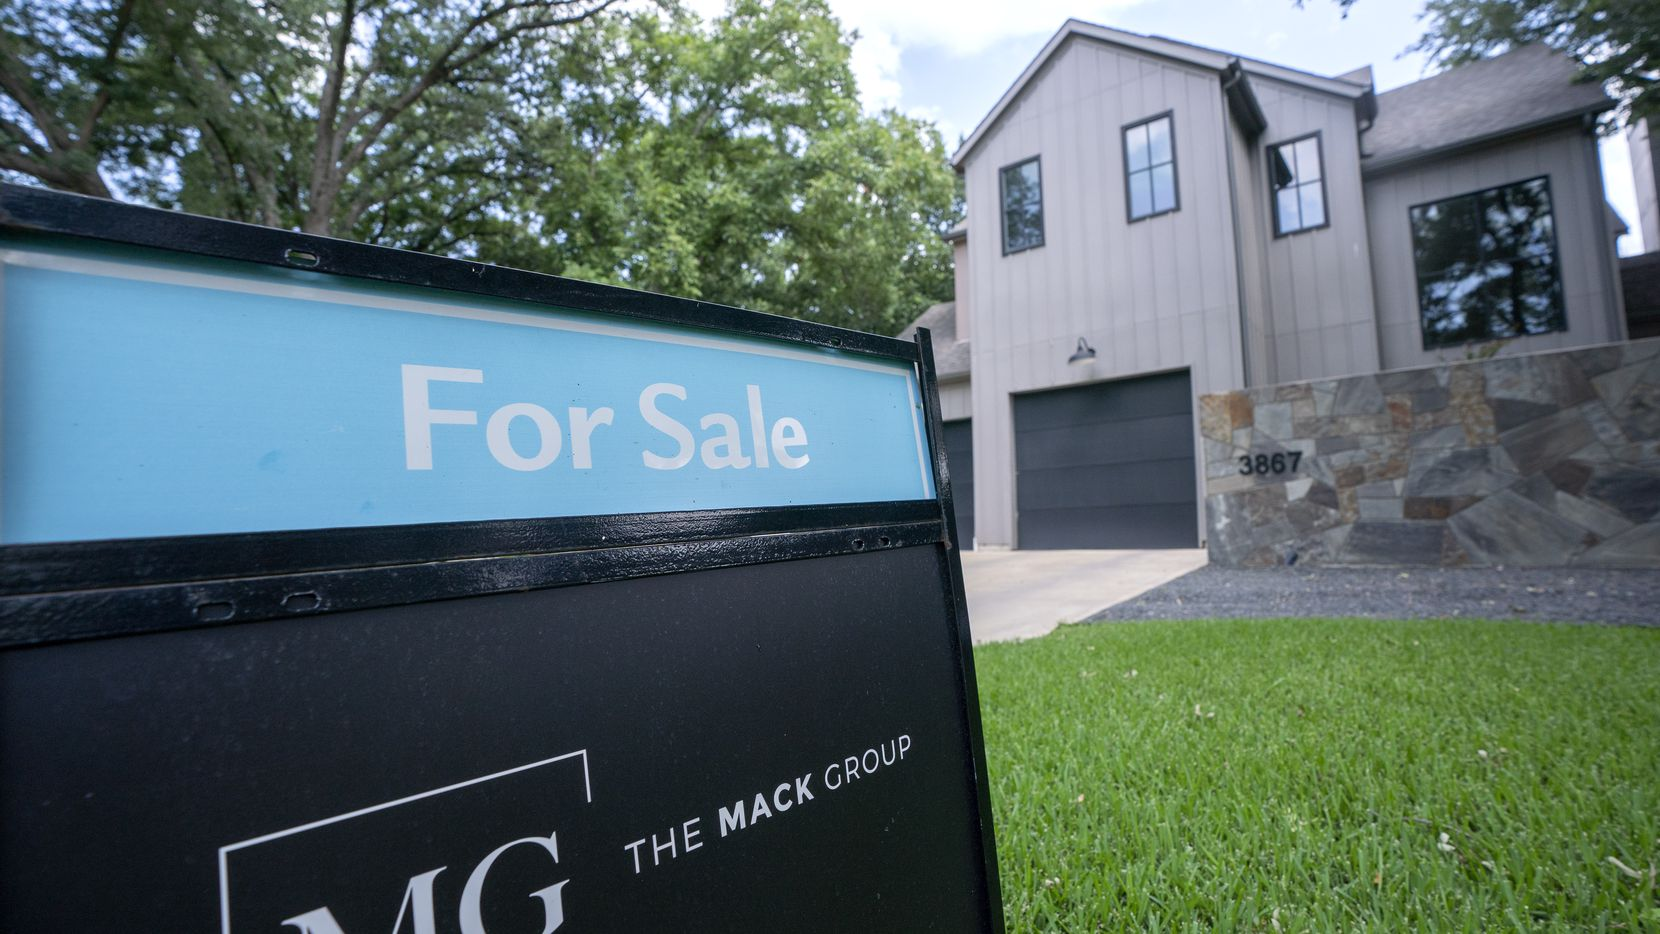 FIve D-FW counties had fewer home sales than in August 2020.